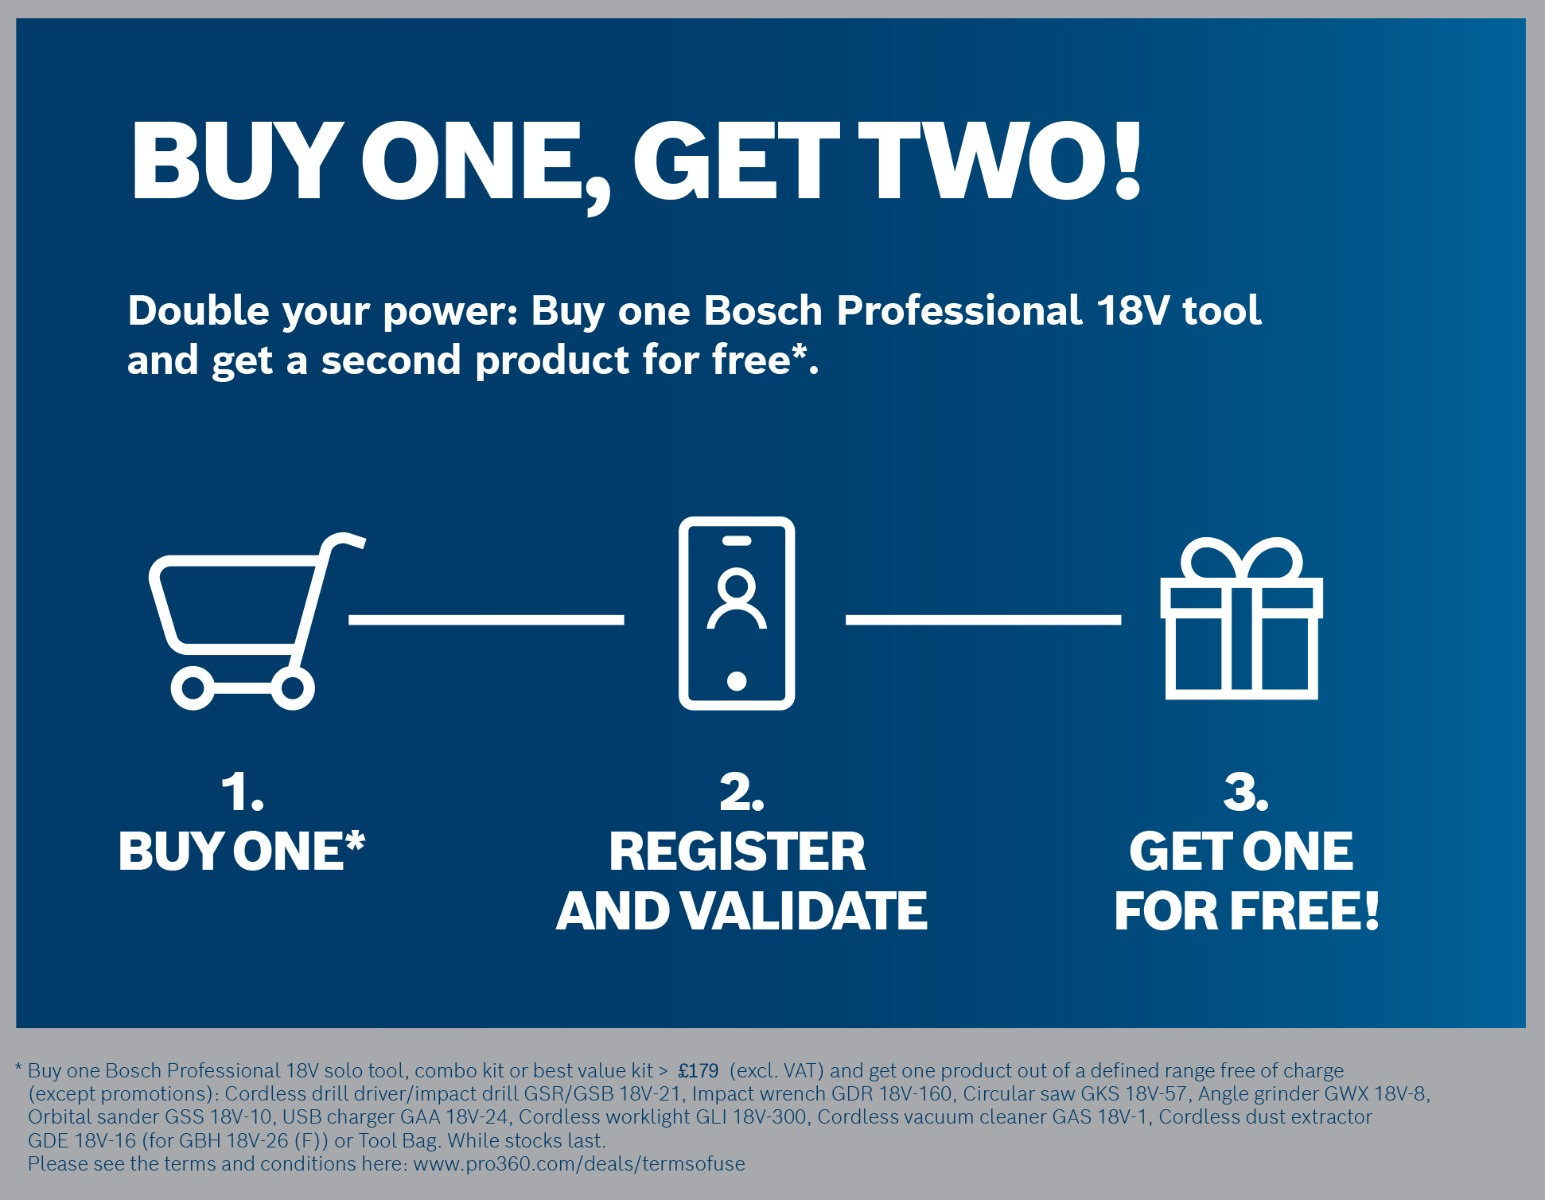 Bosch 2 for 1 Promotion